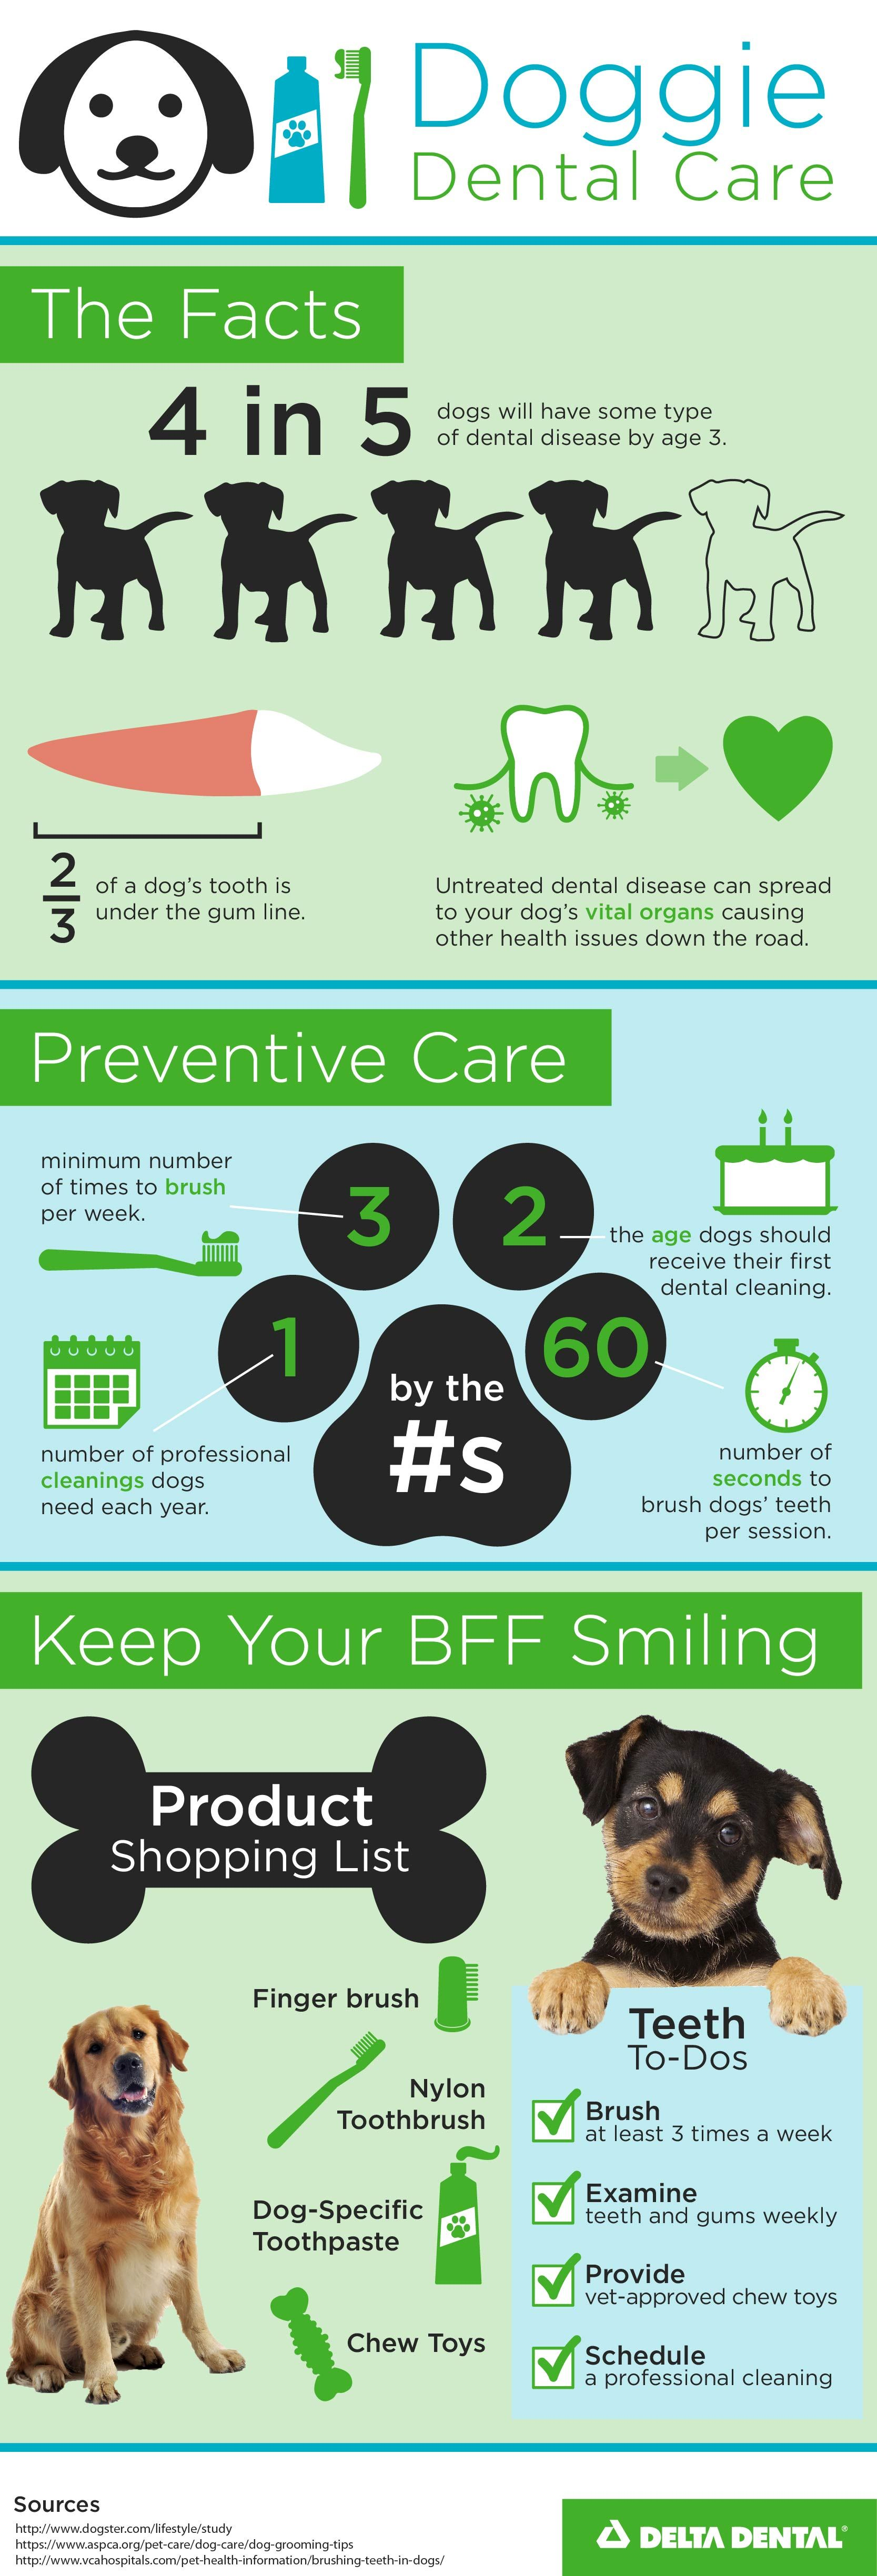 Are you taking proper care of fido and fluffys chompers